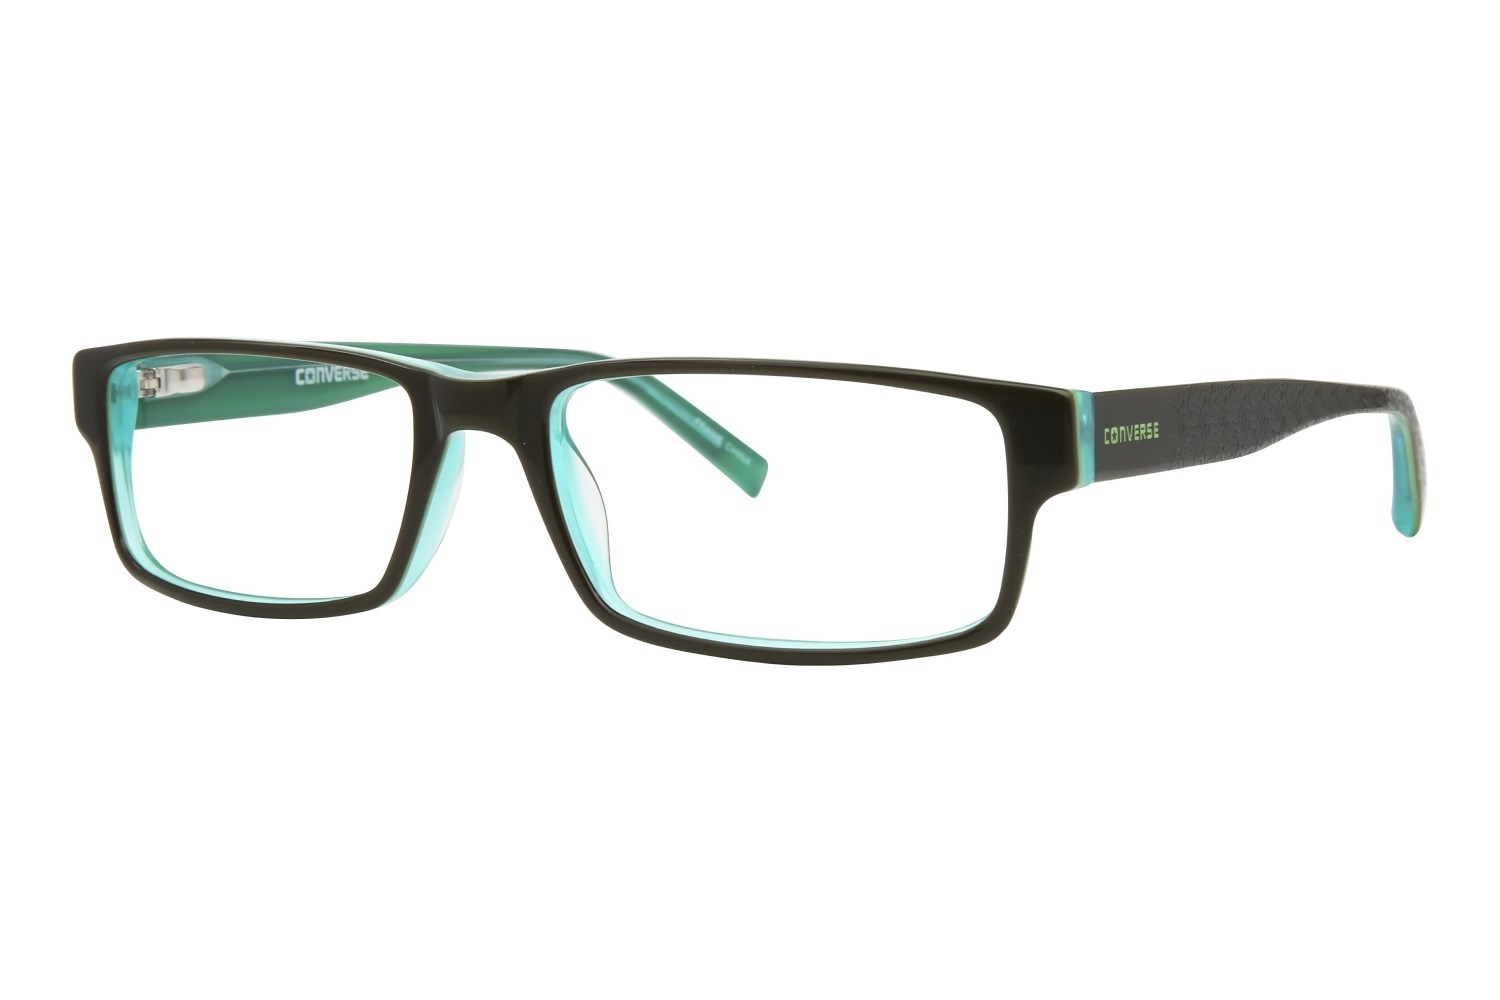 converse-newsprint-prescription-eyeglasses